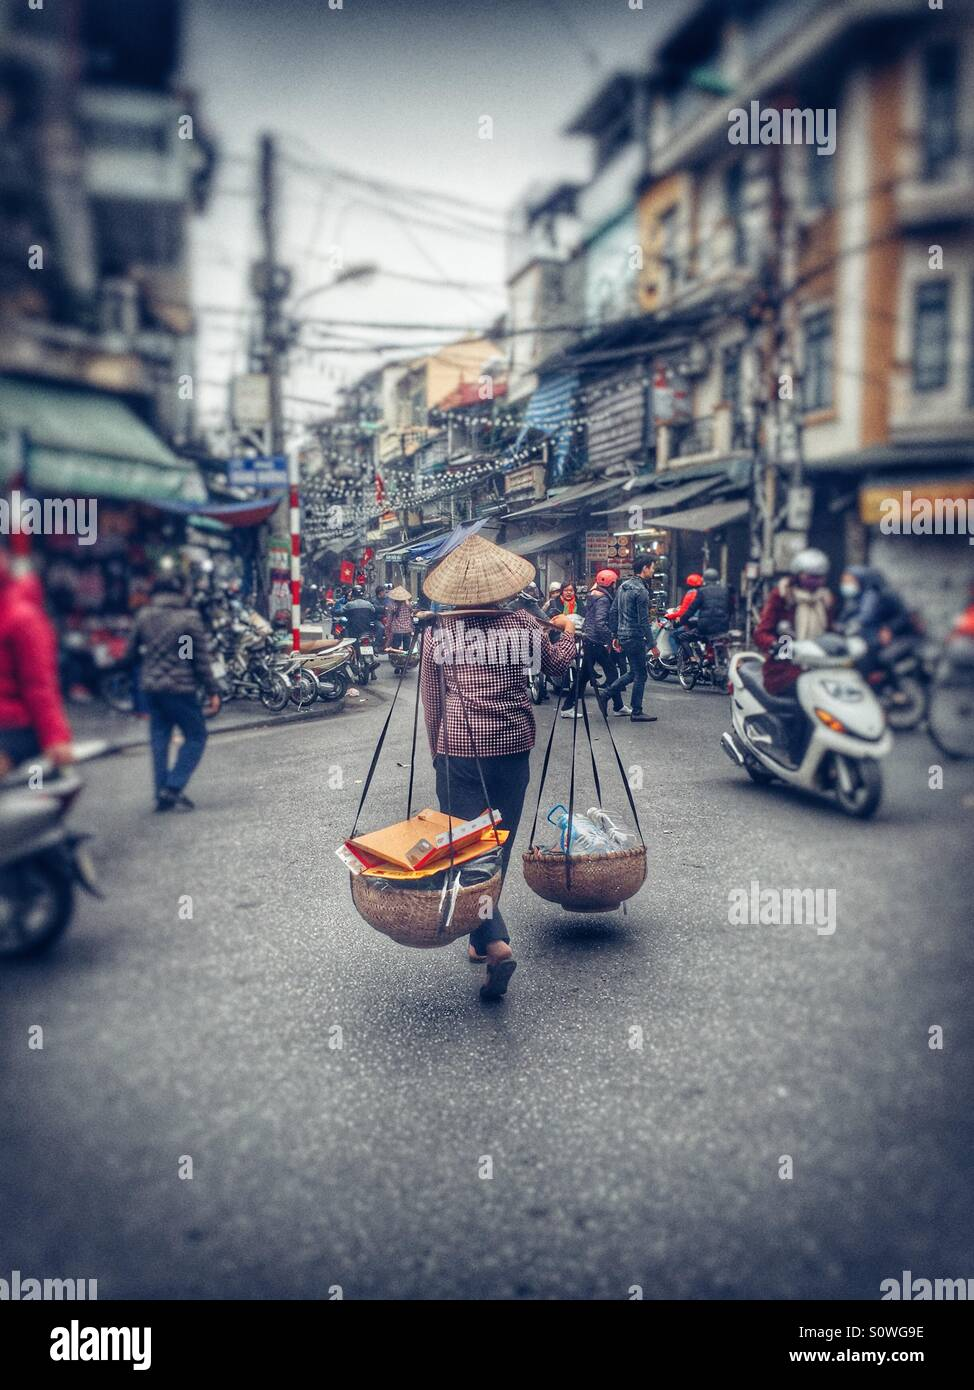 Rue du Vietnam Photo Stock